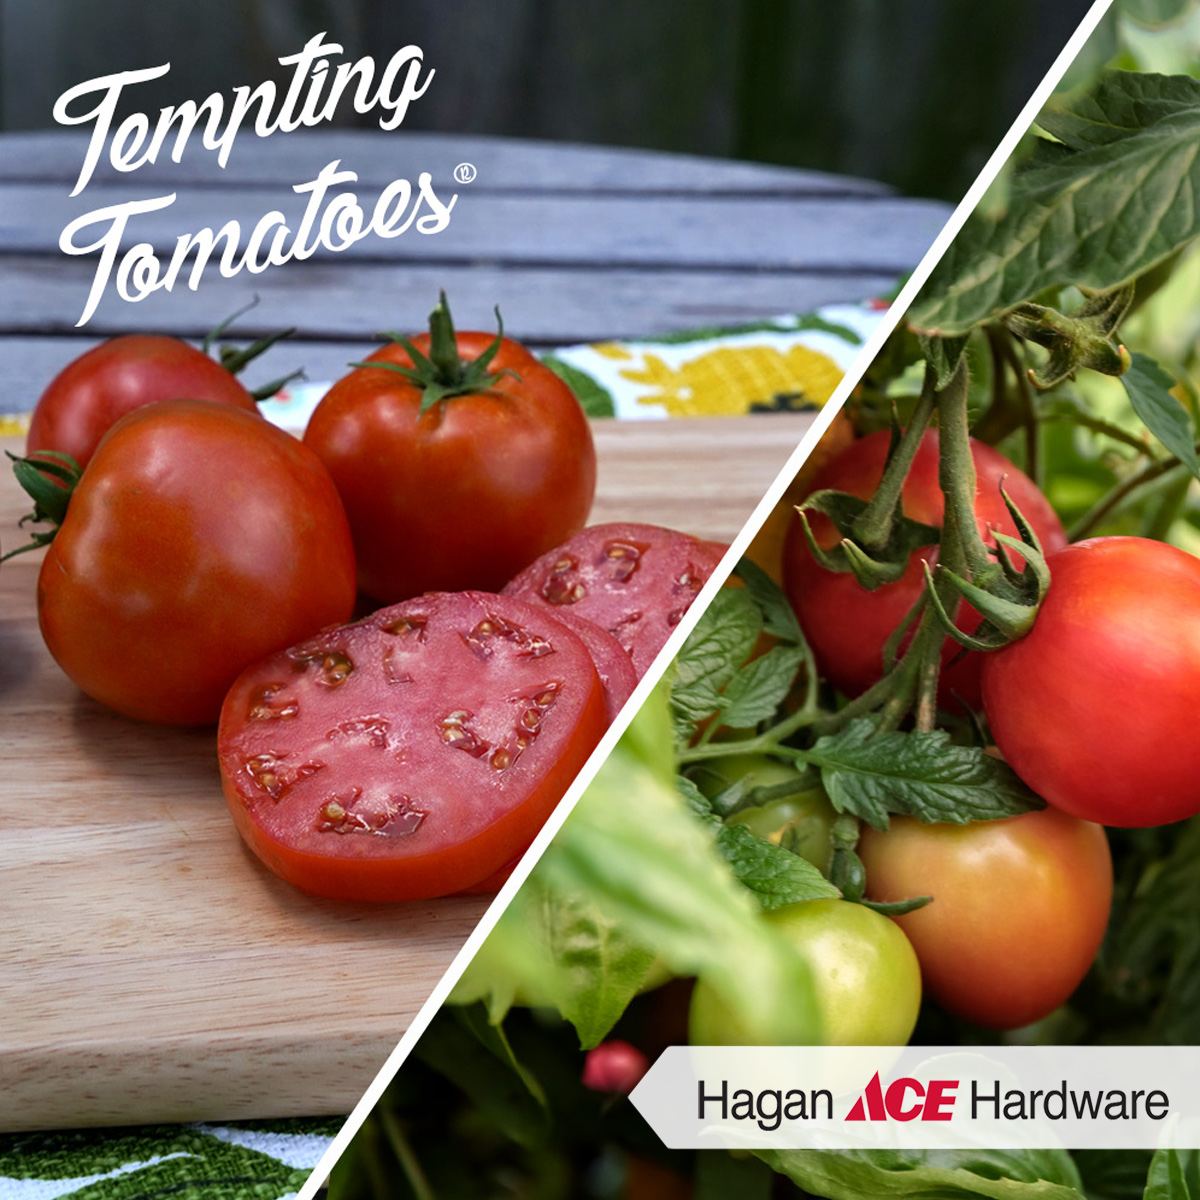 8G Proven Harvest Tempting Tomatoes